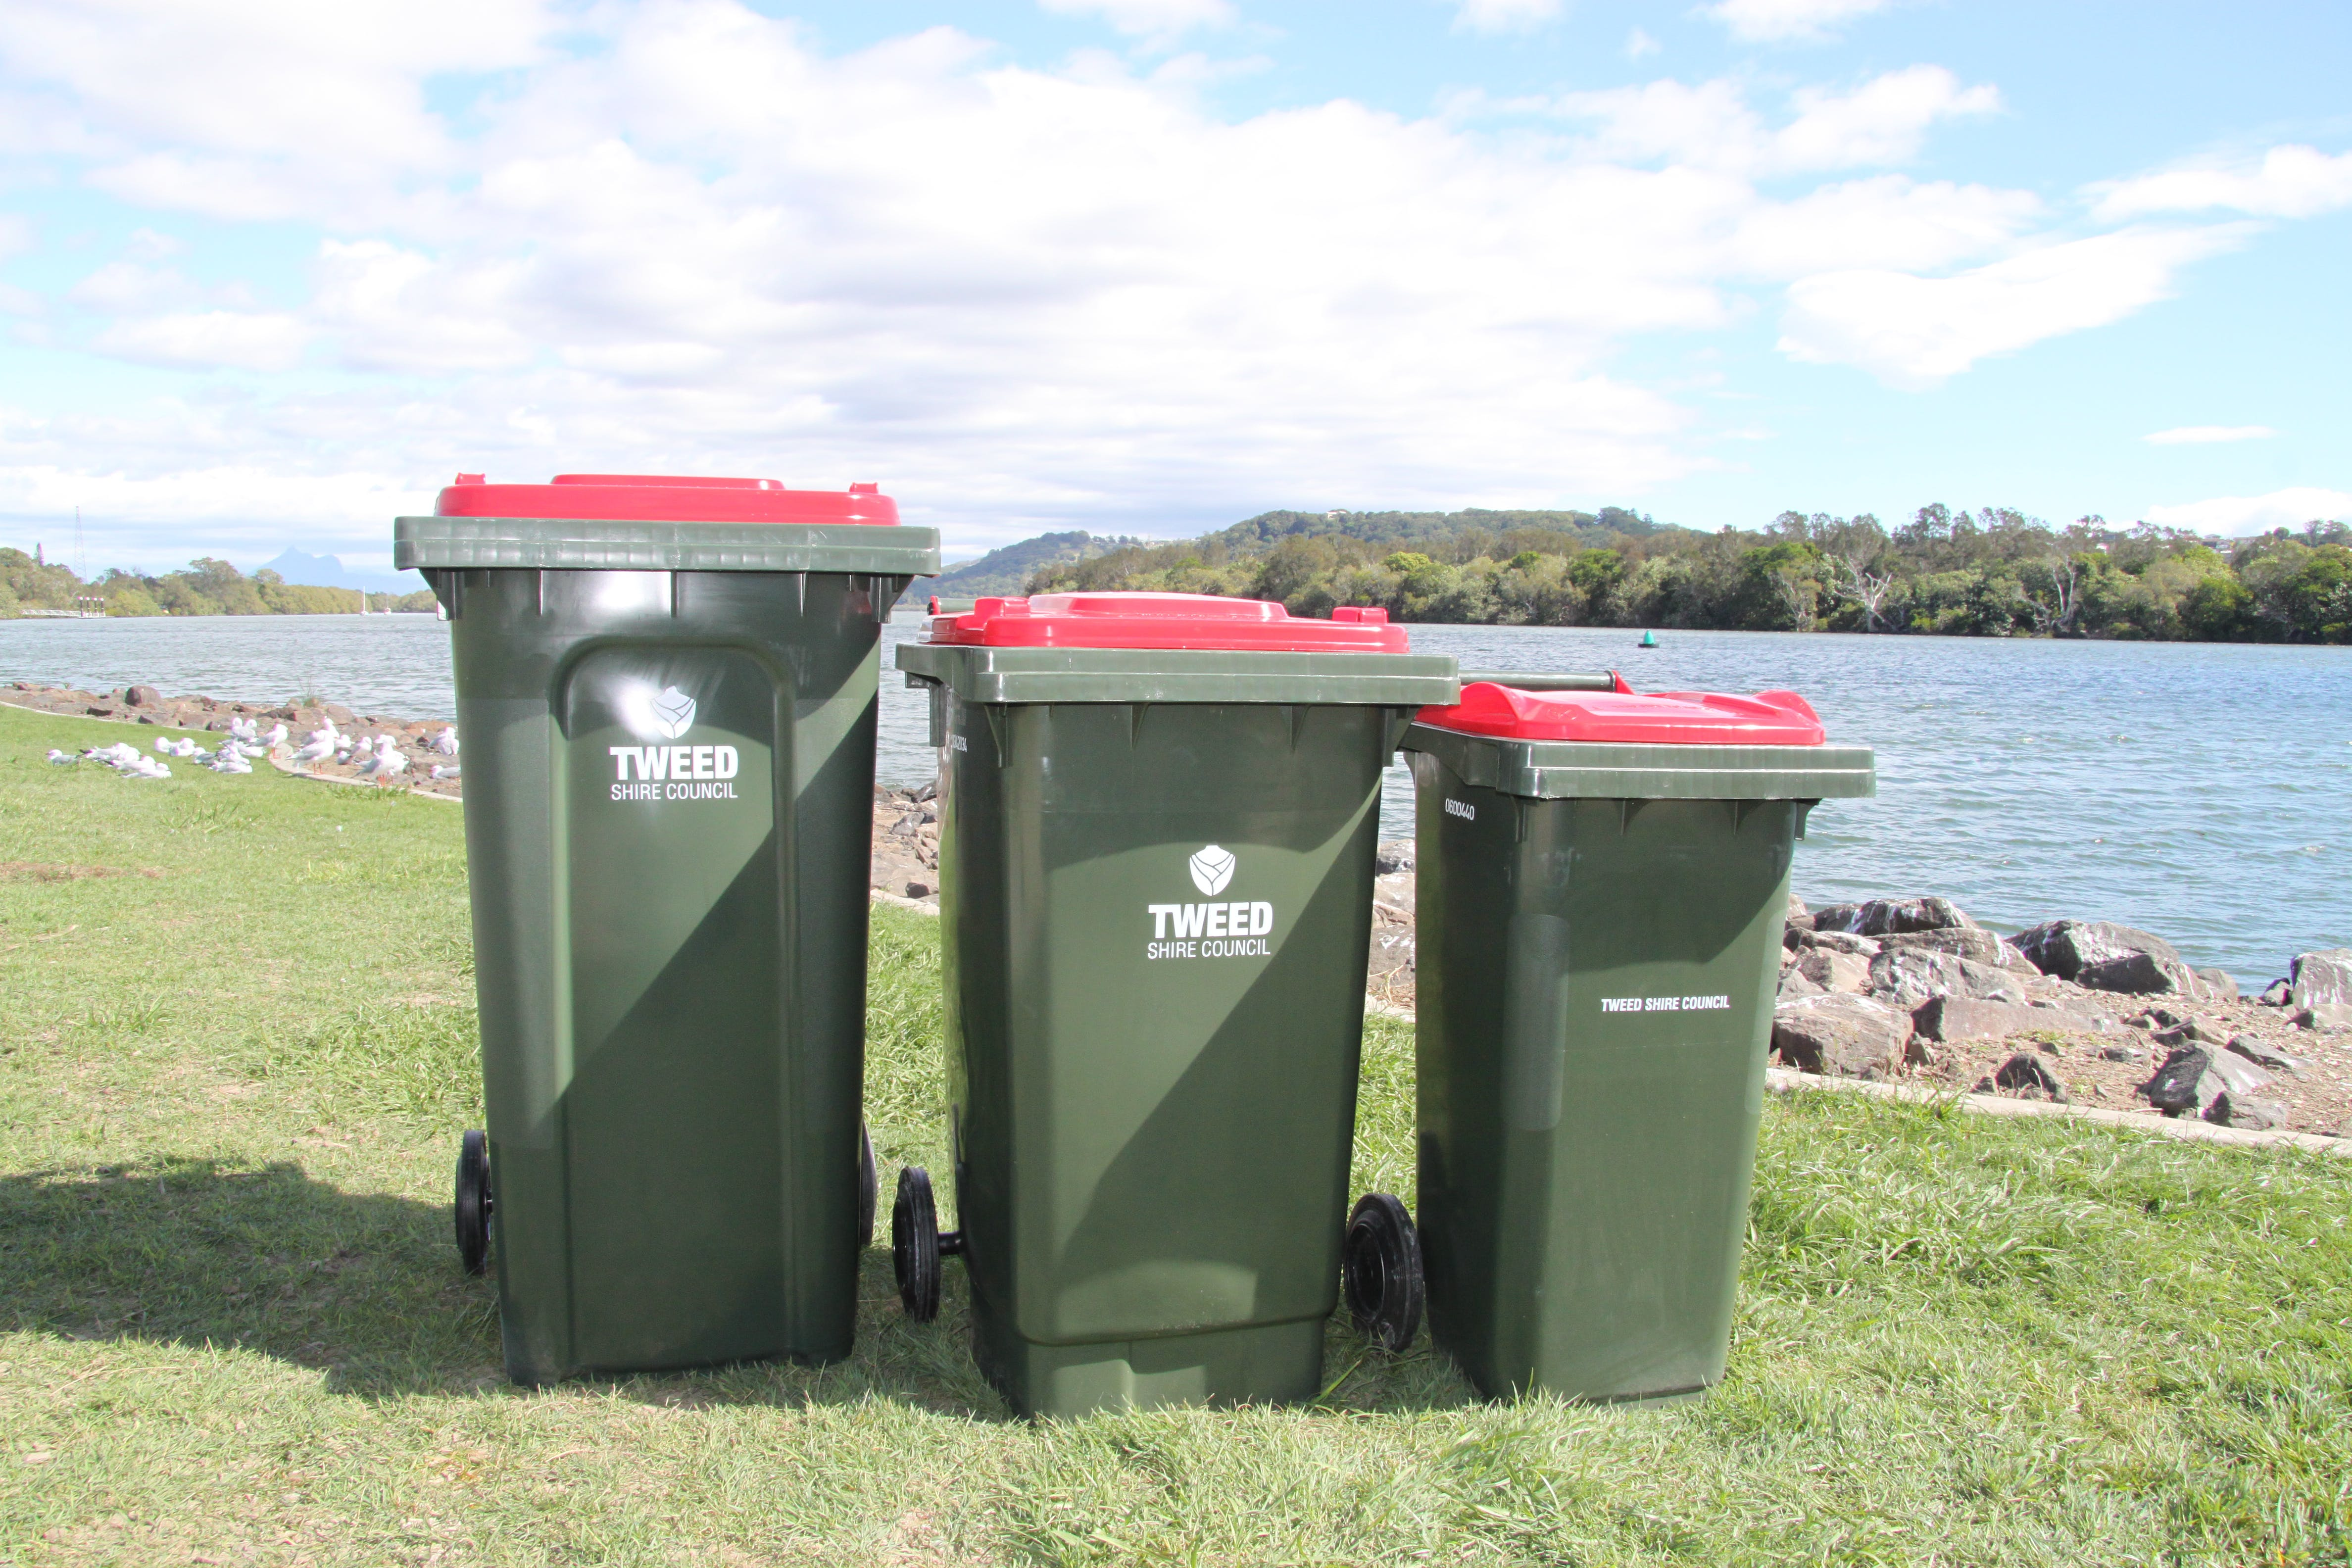 Less to landfill - bin size options